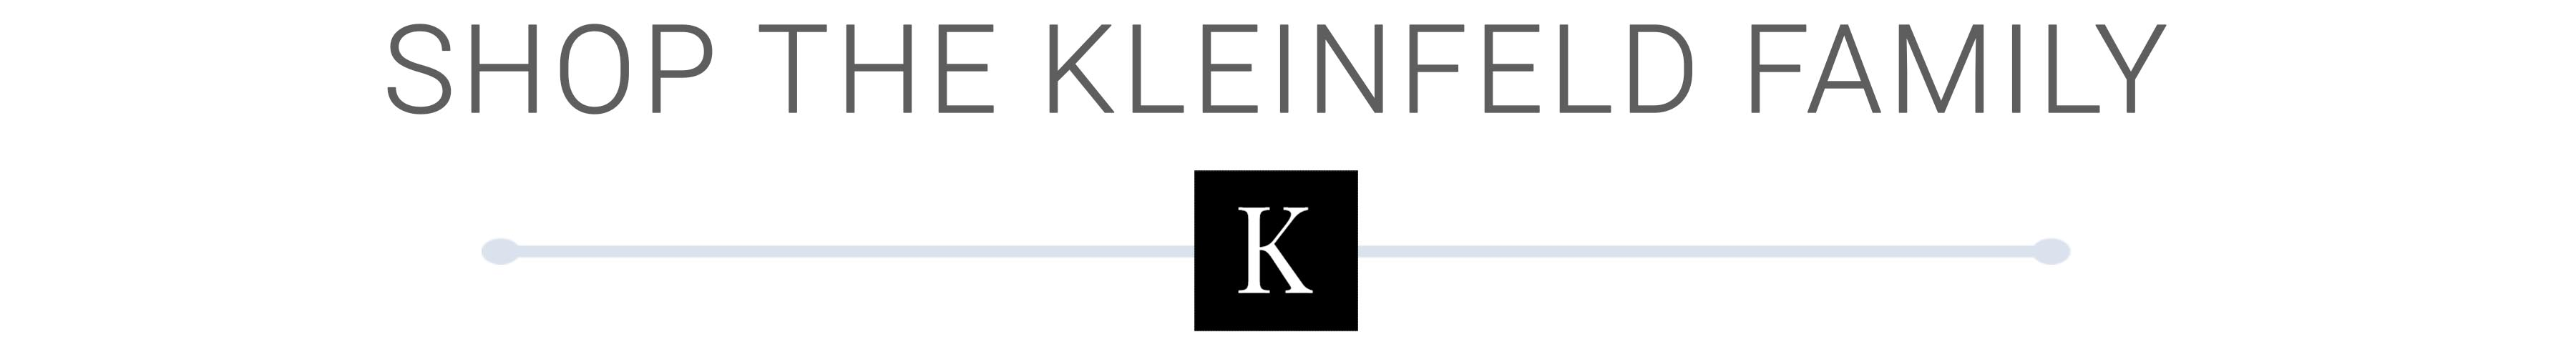 Shop the Kleinfeld Family